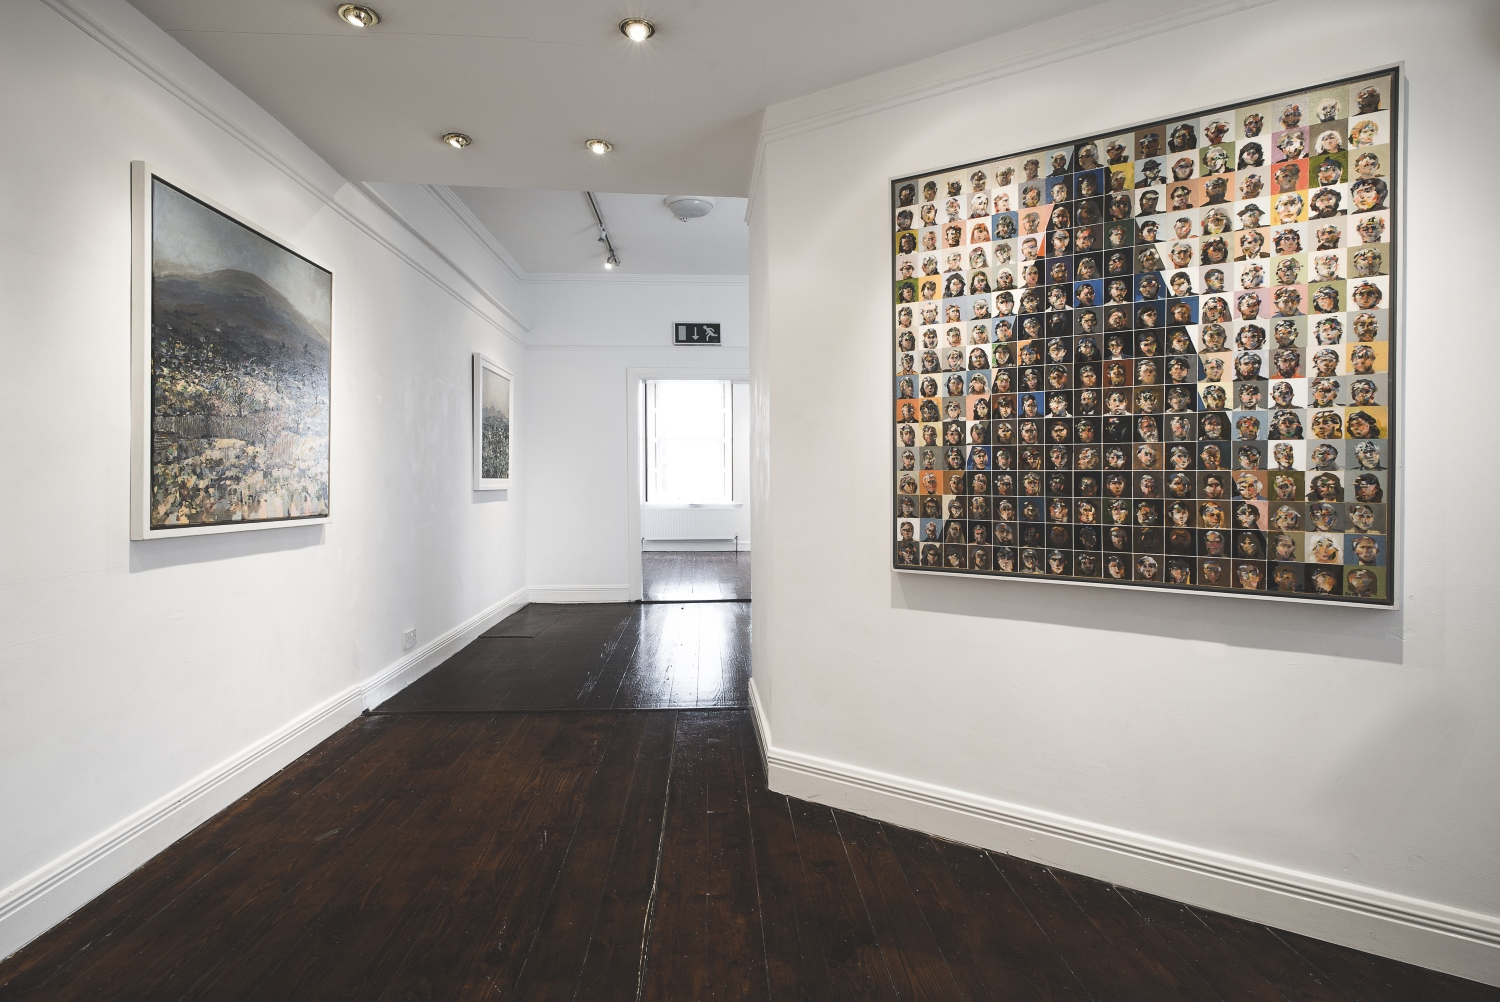 Hamilton Gallery  features year round solo exhibitions by Ireland's leading visual artists. This gallery photo includes work by artist Charles Harper.